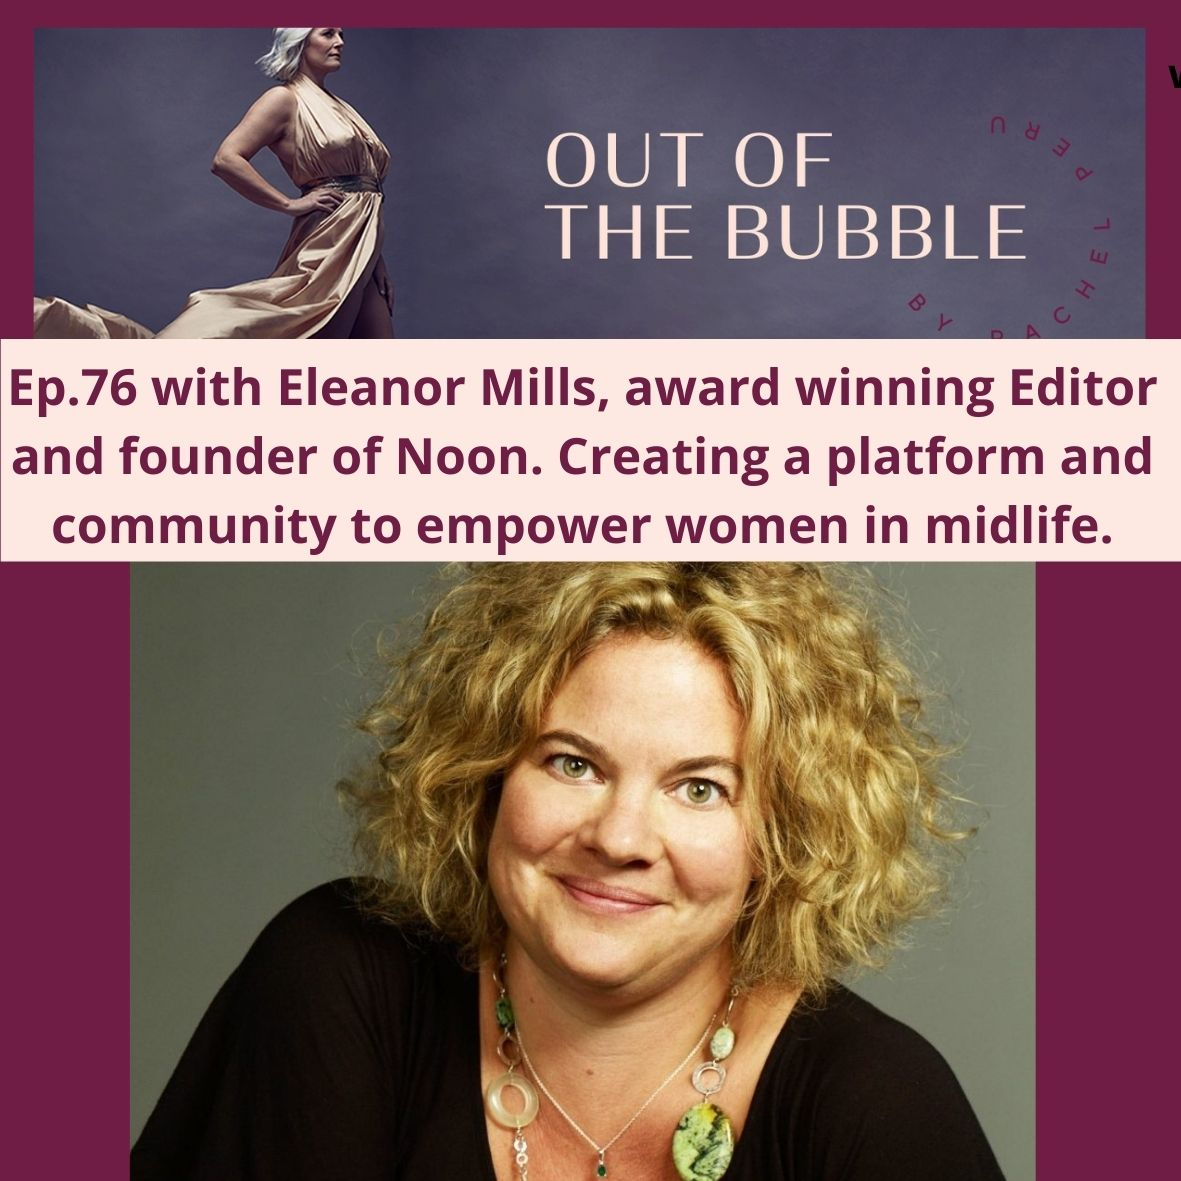 Ep.76 Out of the Bubble with Eleanor Mills, award winning Editor and founder of Noon.